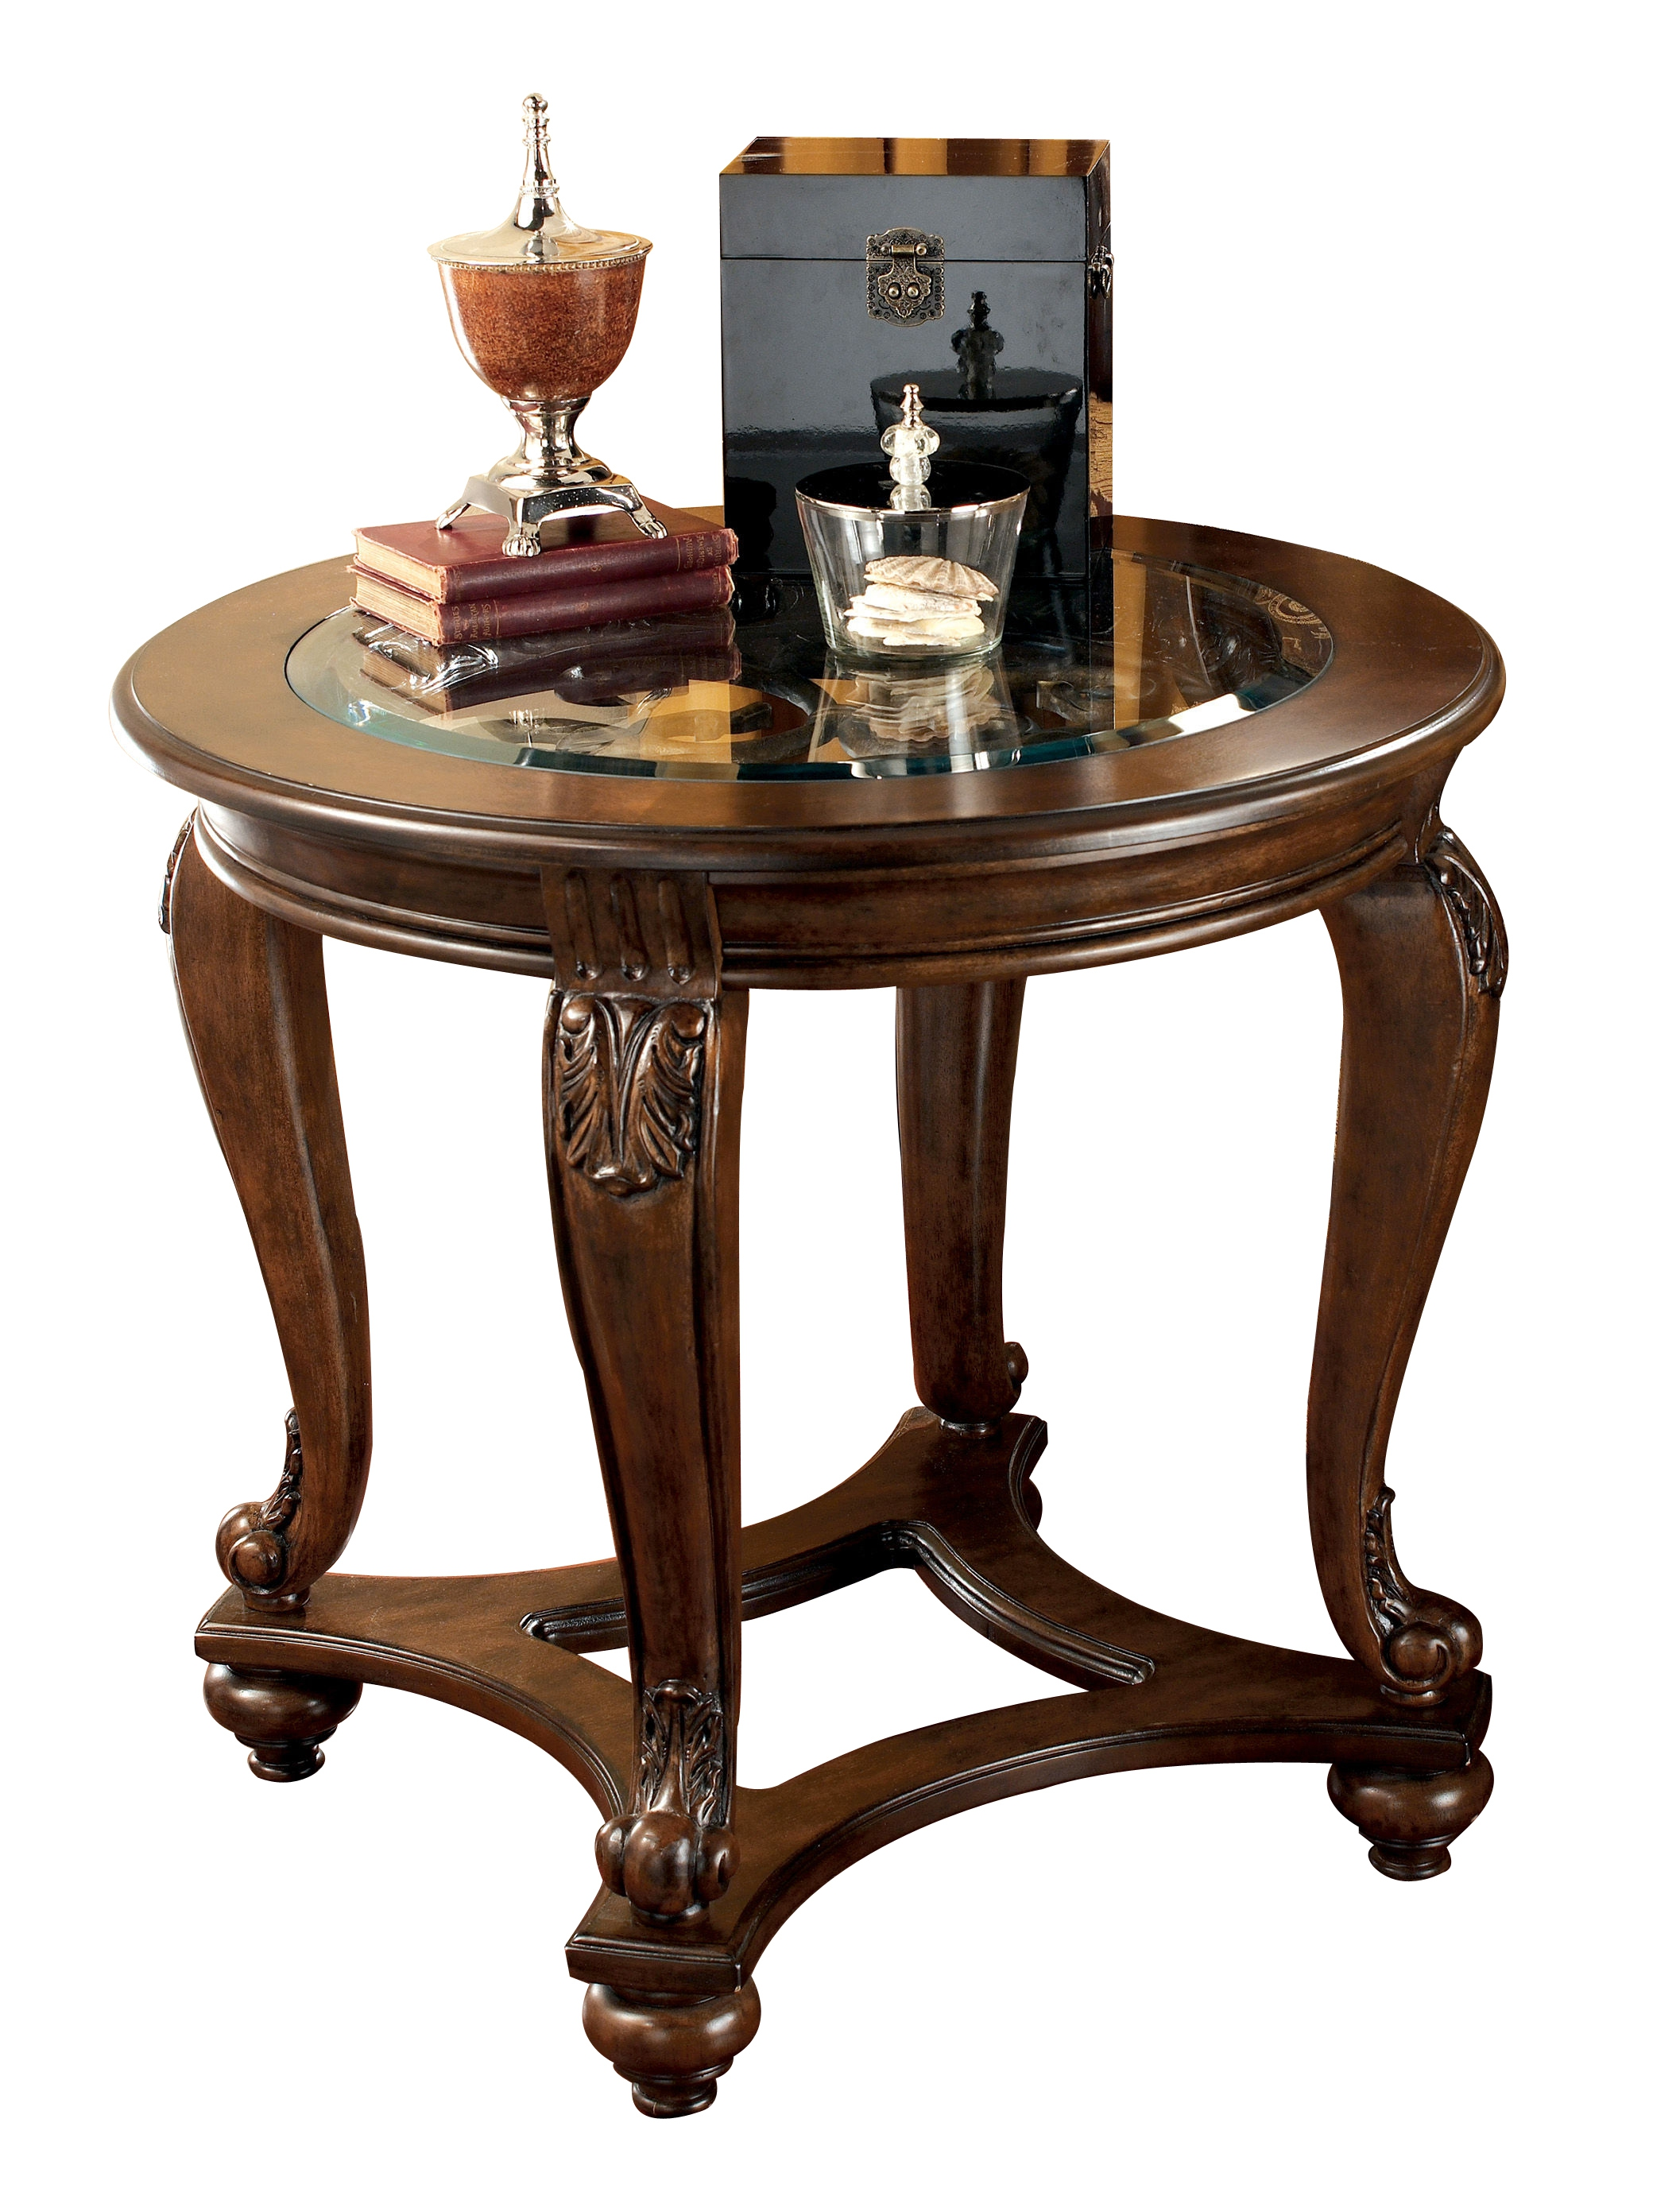 ashley furniture norcastle end table the classy home wbg dark brown wood click enlarge glass coffee black frame zenfield chair log bench kmart plastic contemporary nest tables